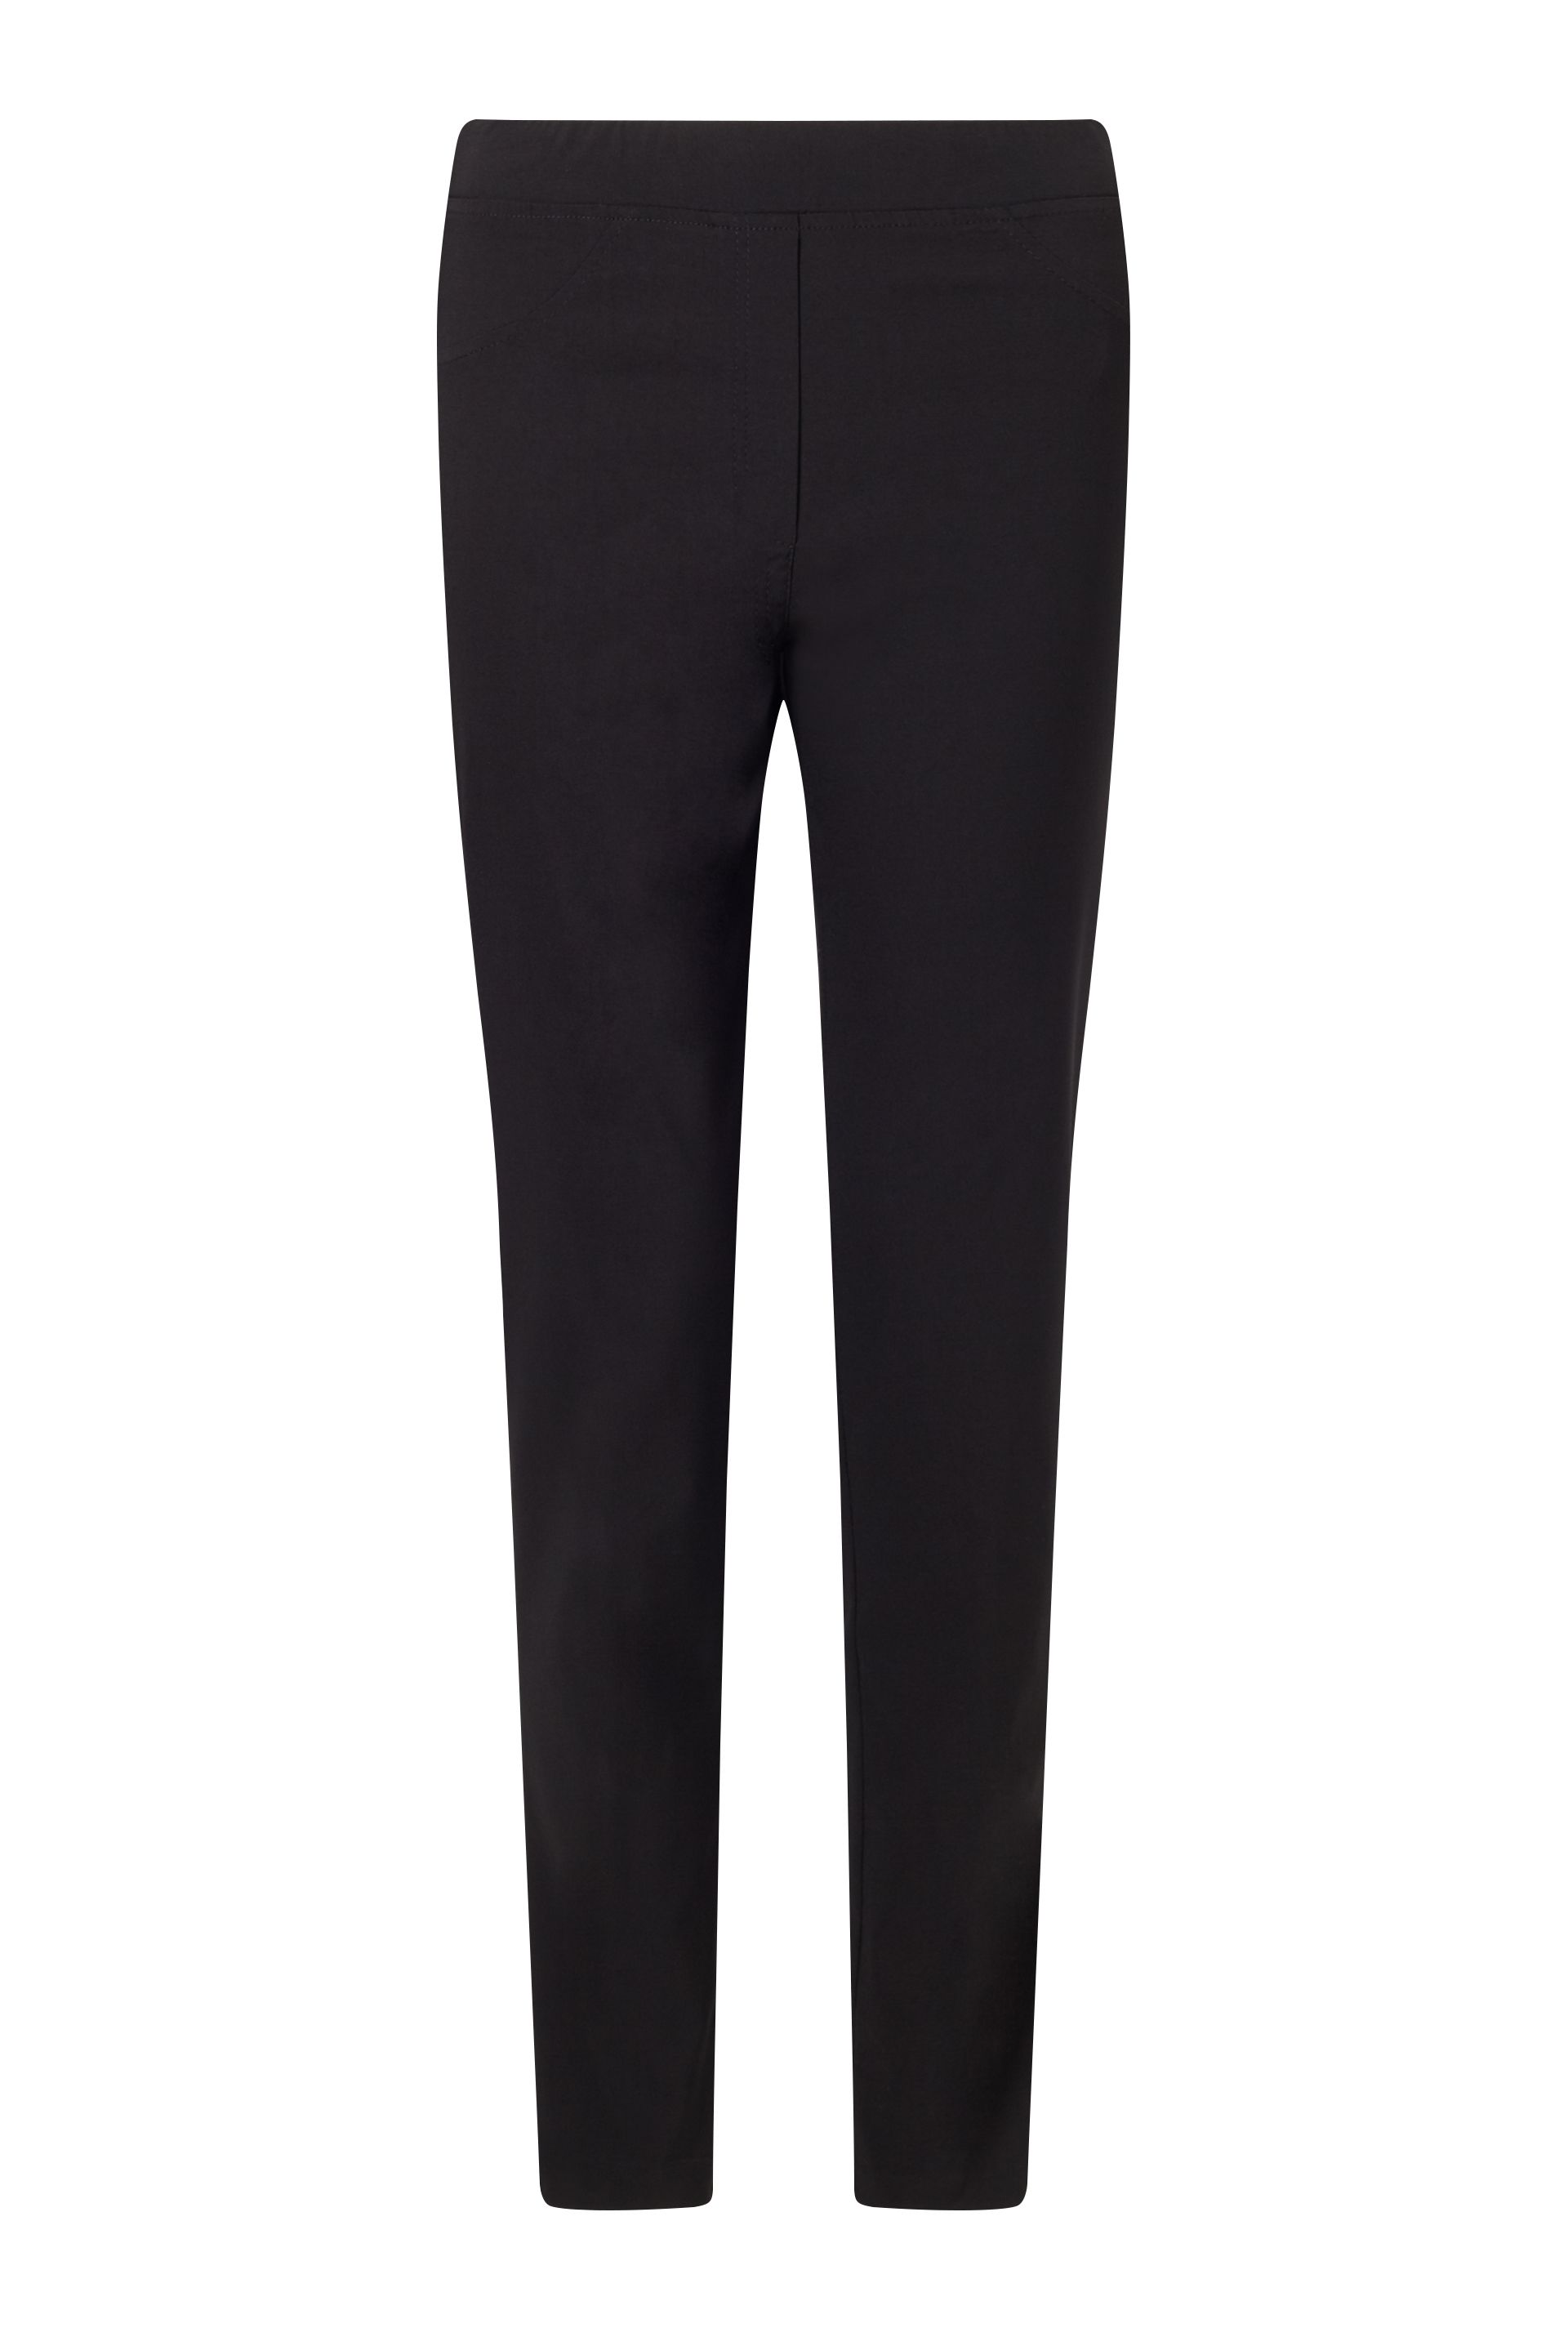 James Lakeland Long Length Bengalina Trouser, Black